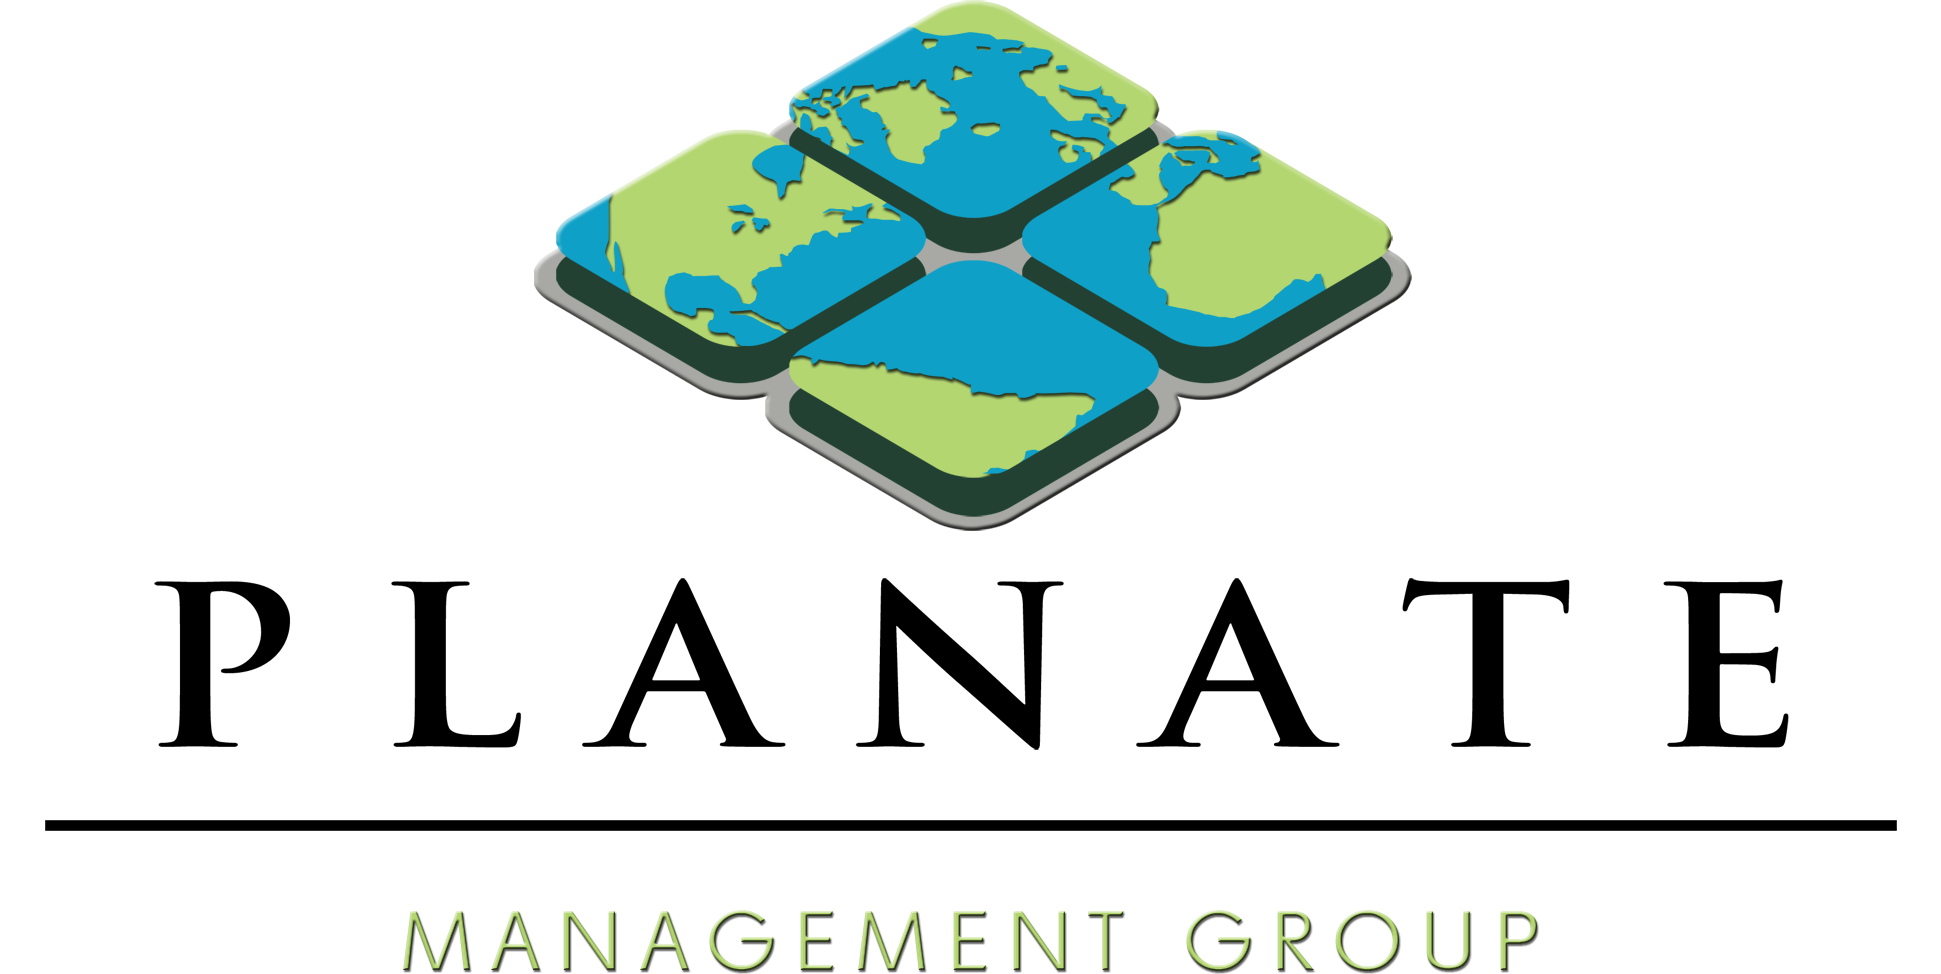 Planate Management Group